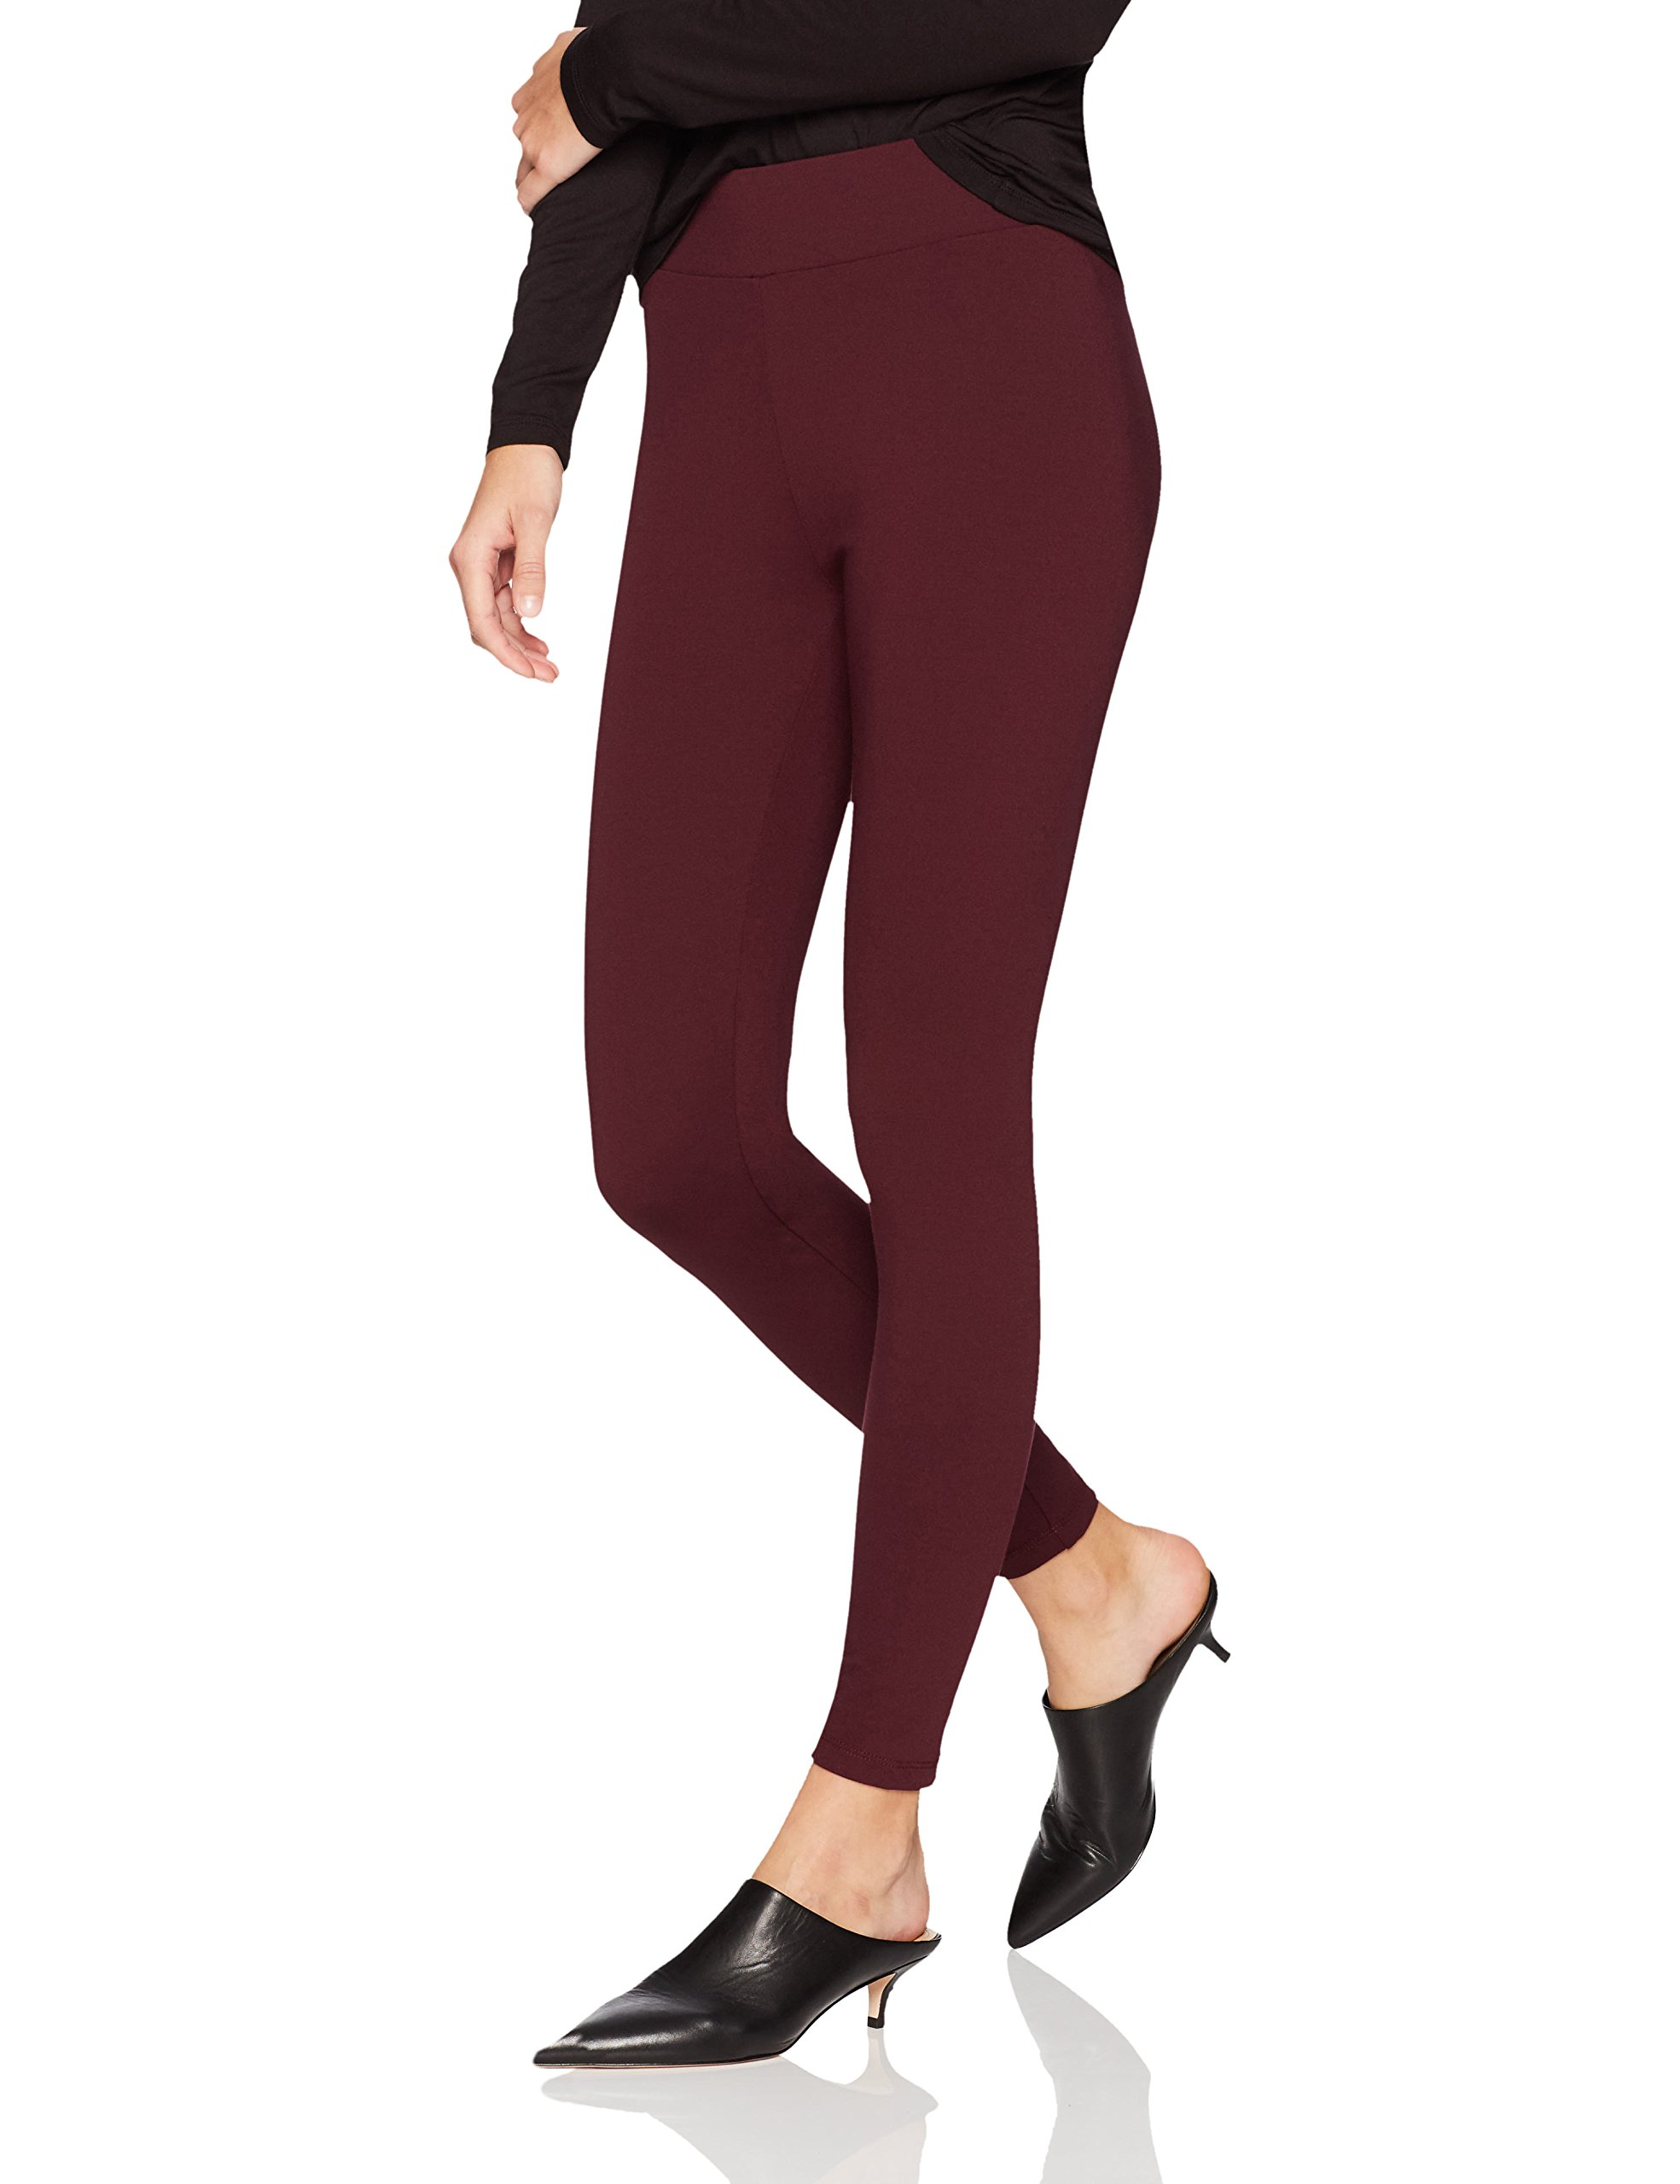 Daily Ritual Women's Ponte Knit Legging, Burgundy, XXL, Short